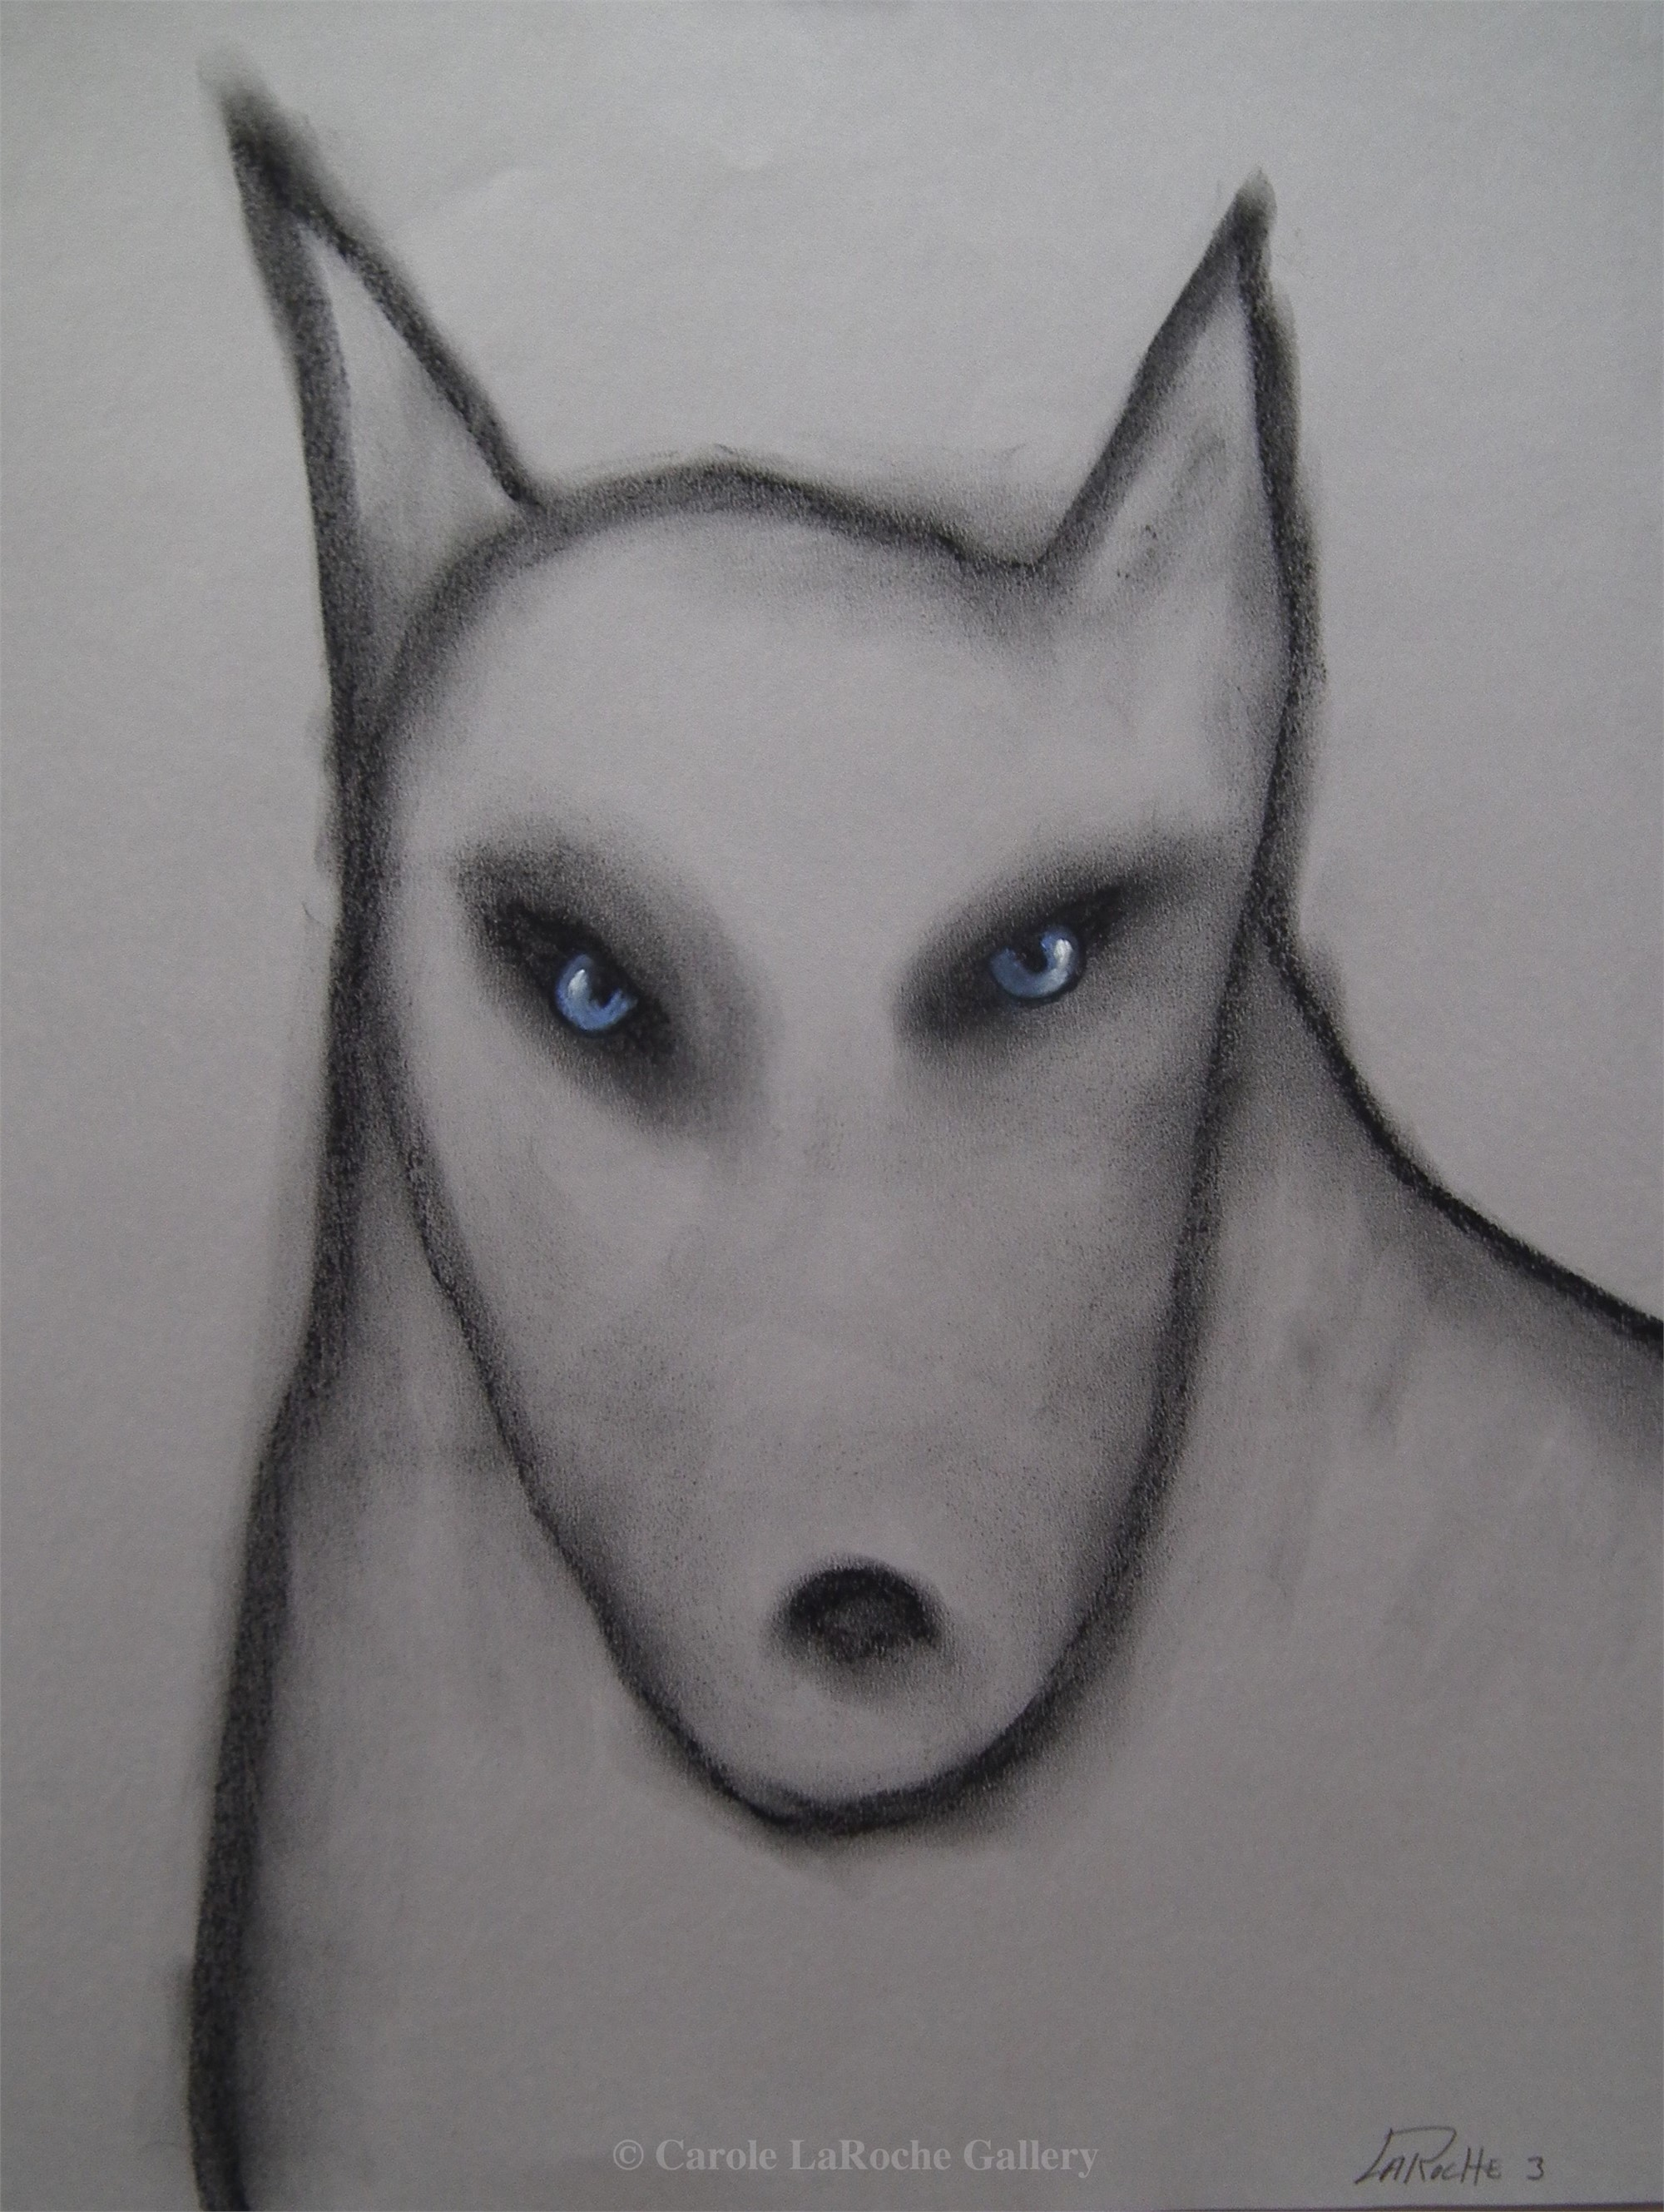 THE VISITORS / WOLF #3 by Carole LaRoche